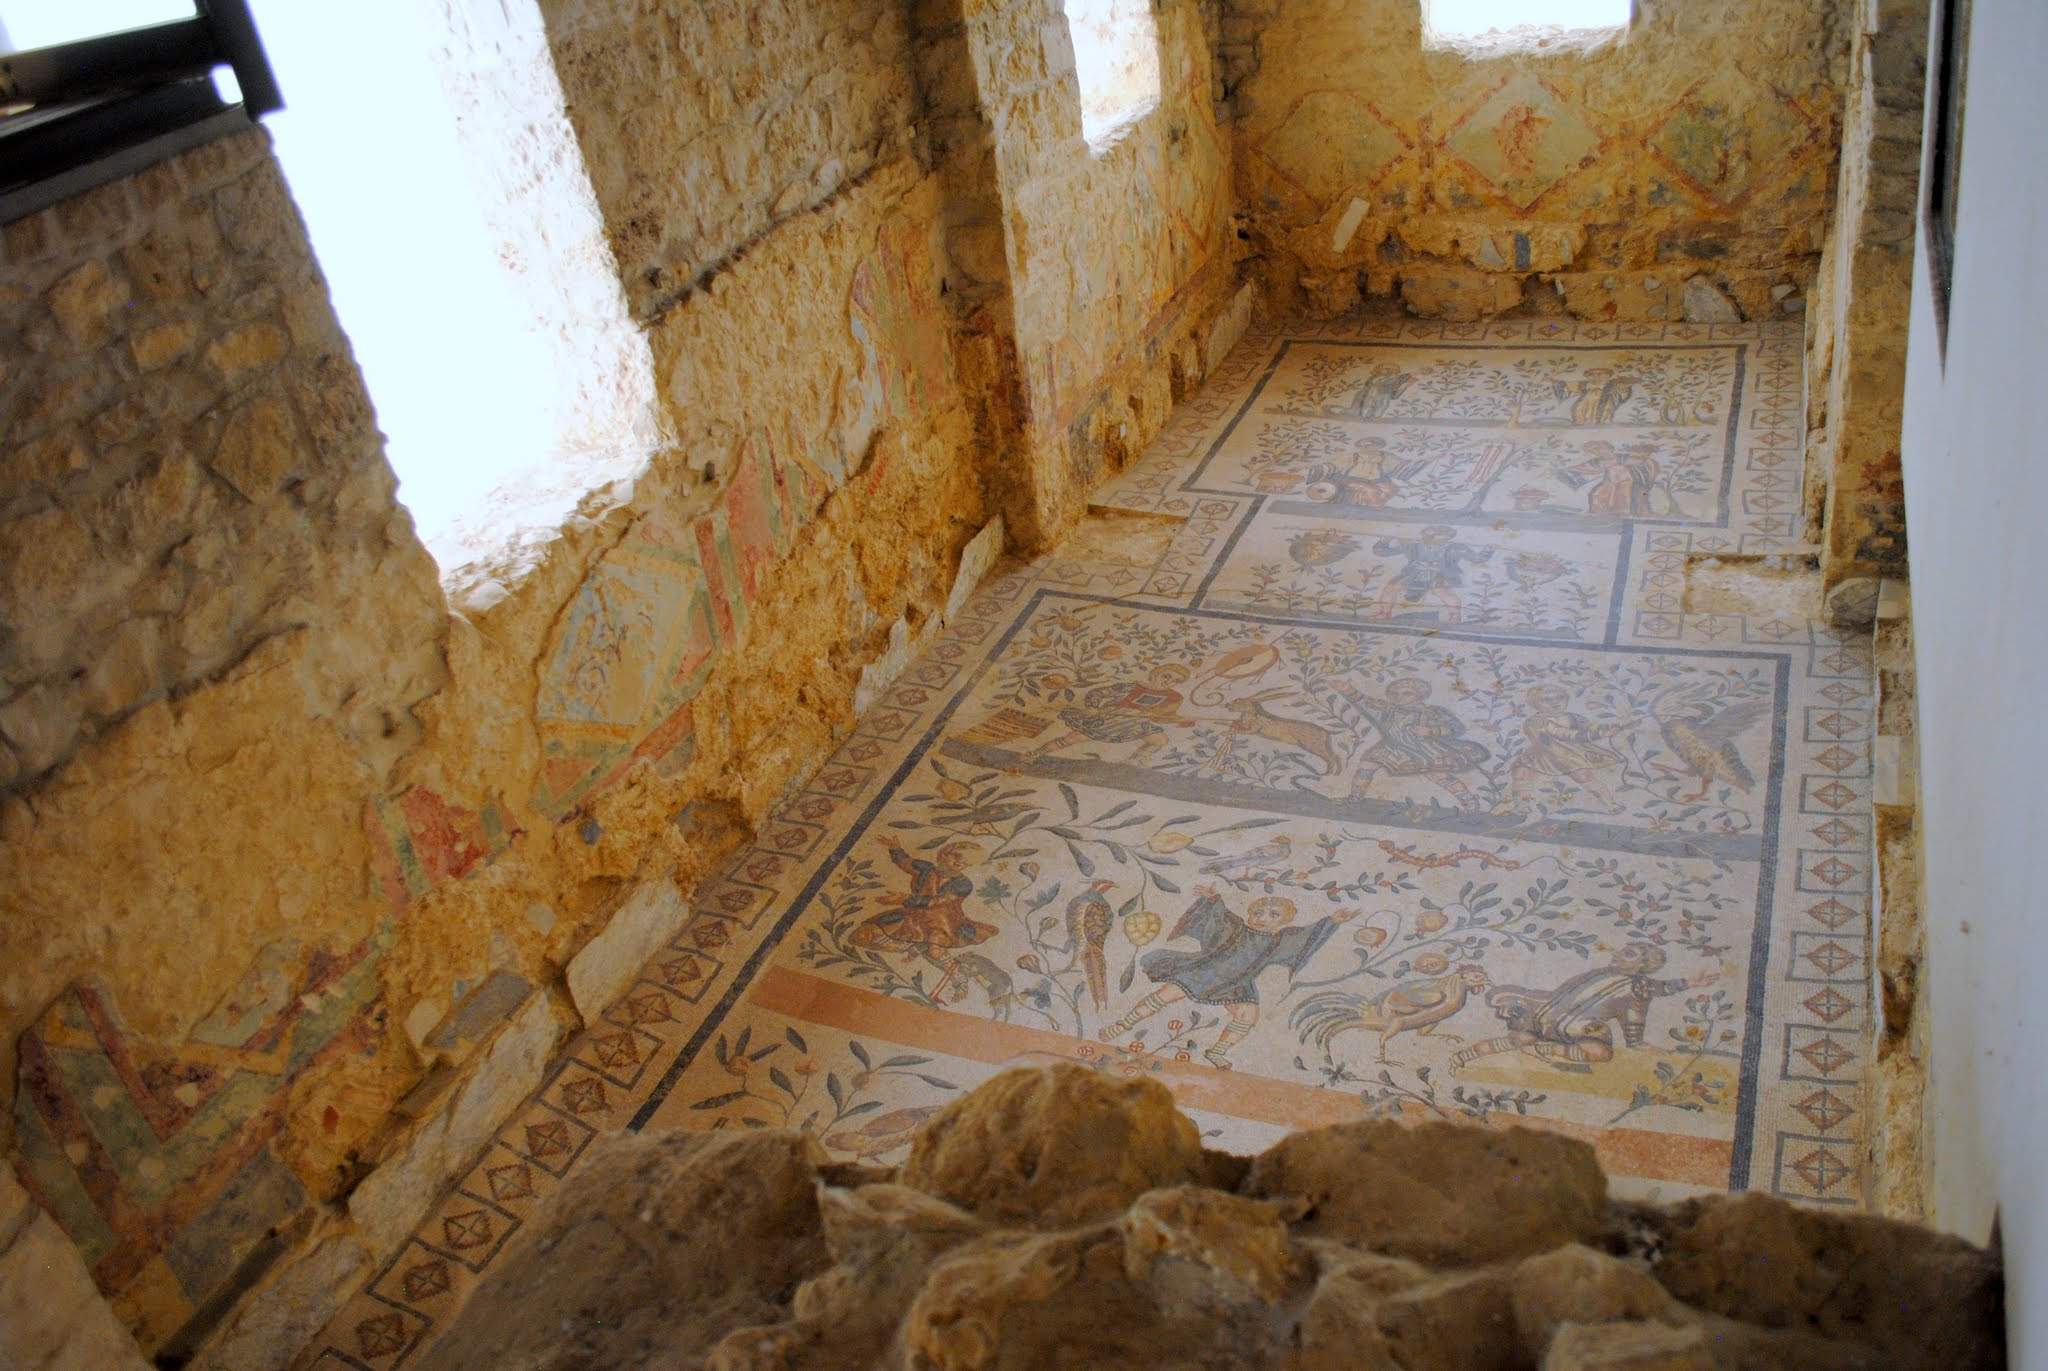 My Photos: Italy -- Mosaics -- Sicily -- Piazza Armerina -- The Cubicle of the Little Hunt Mosaic